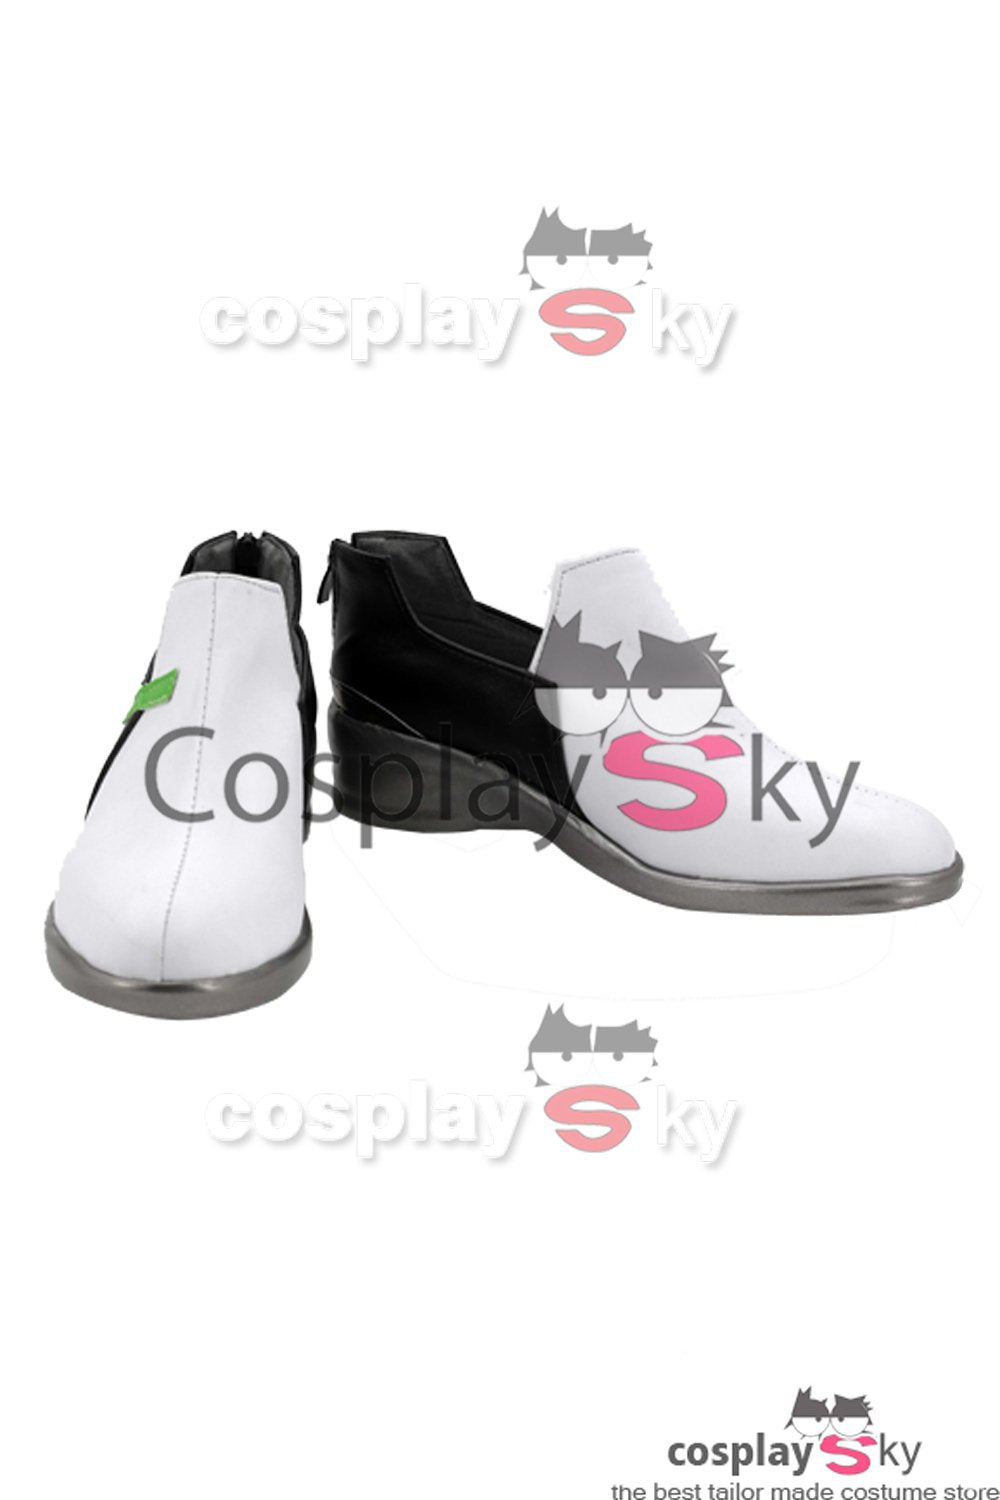 Overwatch D.VA DVA Hana Song Cosplay Chaussures </p>                                 <!--bof Product URL -->                                                                 <!--eof Product URL -->                                 <!--bof Quantity Discounts table -->                                                                 <!--eof Quantity Discounts table -->                             </div>                         </div>                                             </div>                 </div> <!--eof Product_info left wrapper -->             </div>         </div>     </section>      <section class=